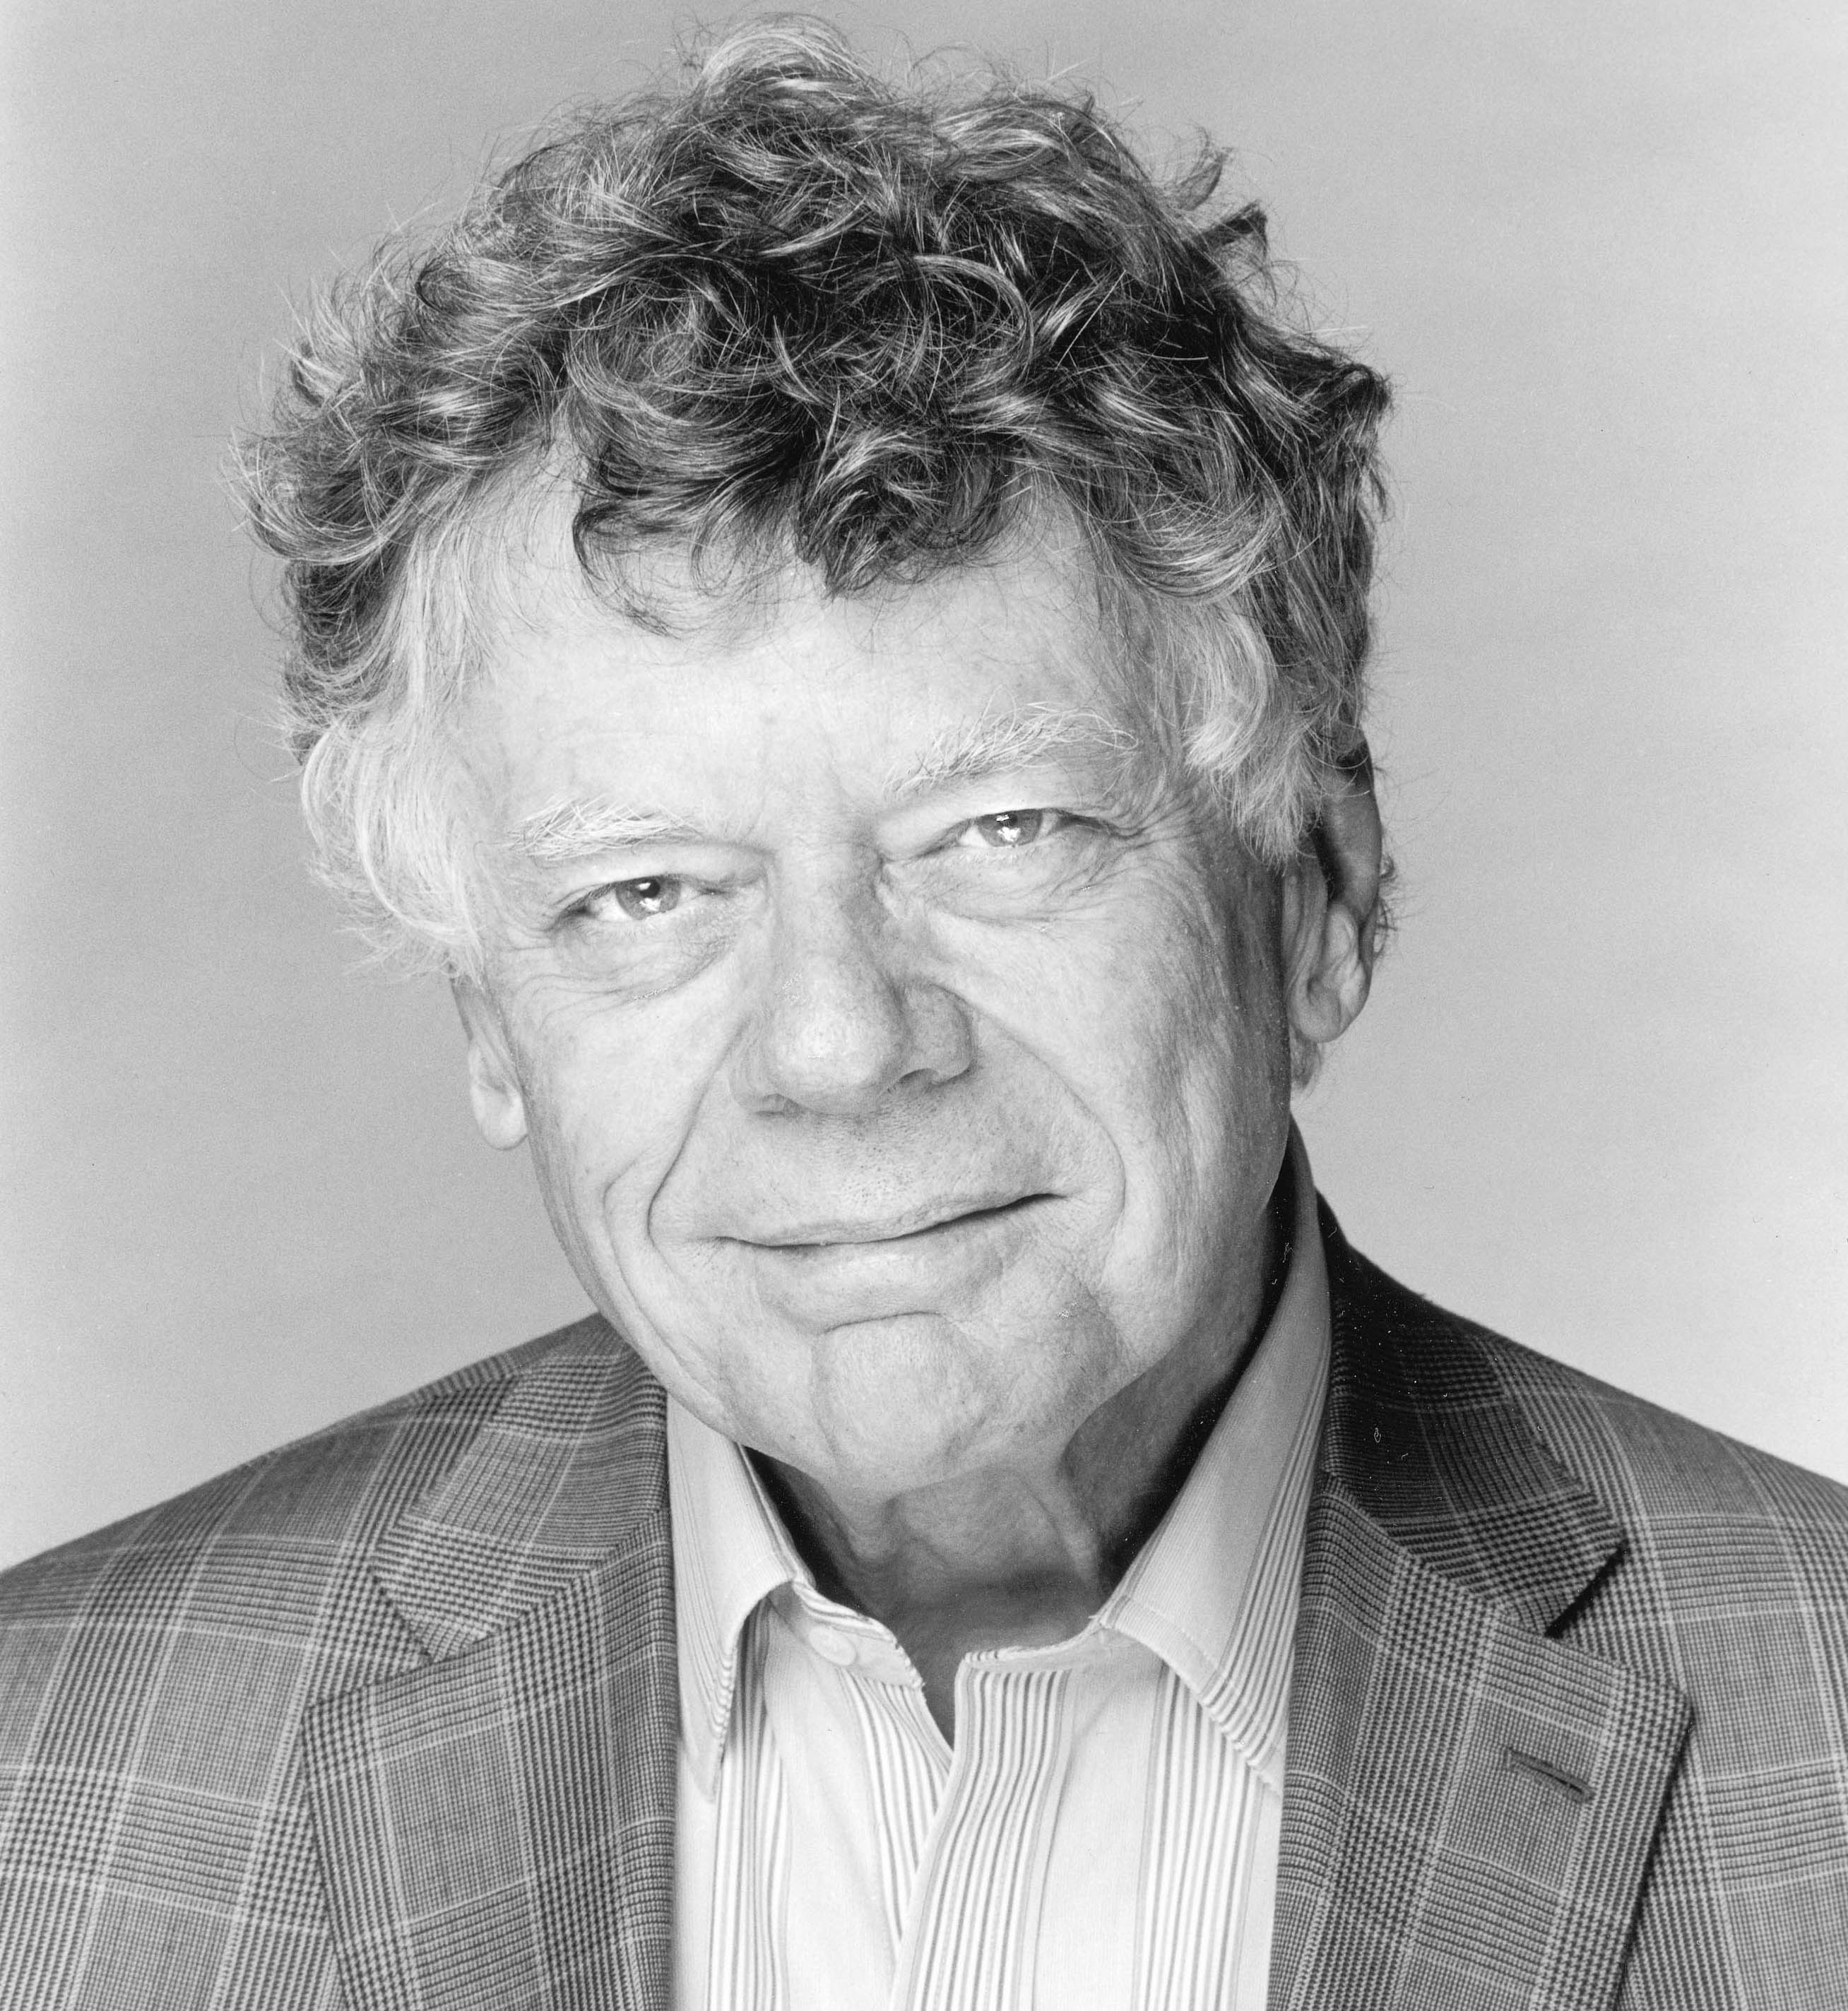 Discover Gordon Getty on Spotify